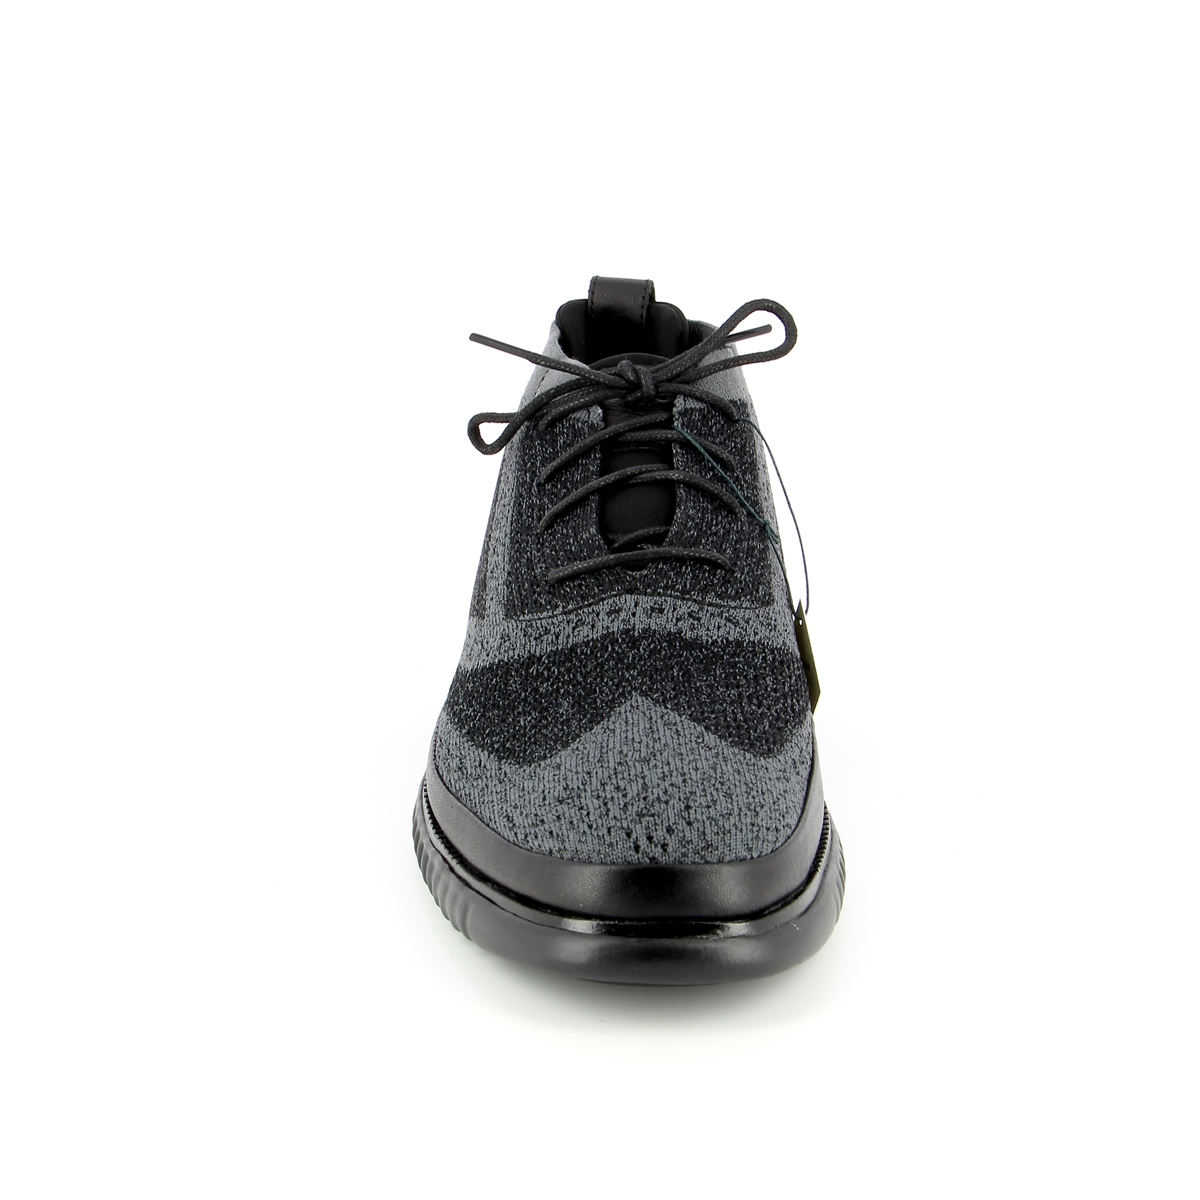 Cole Haan Bottines noir